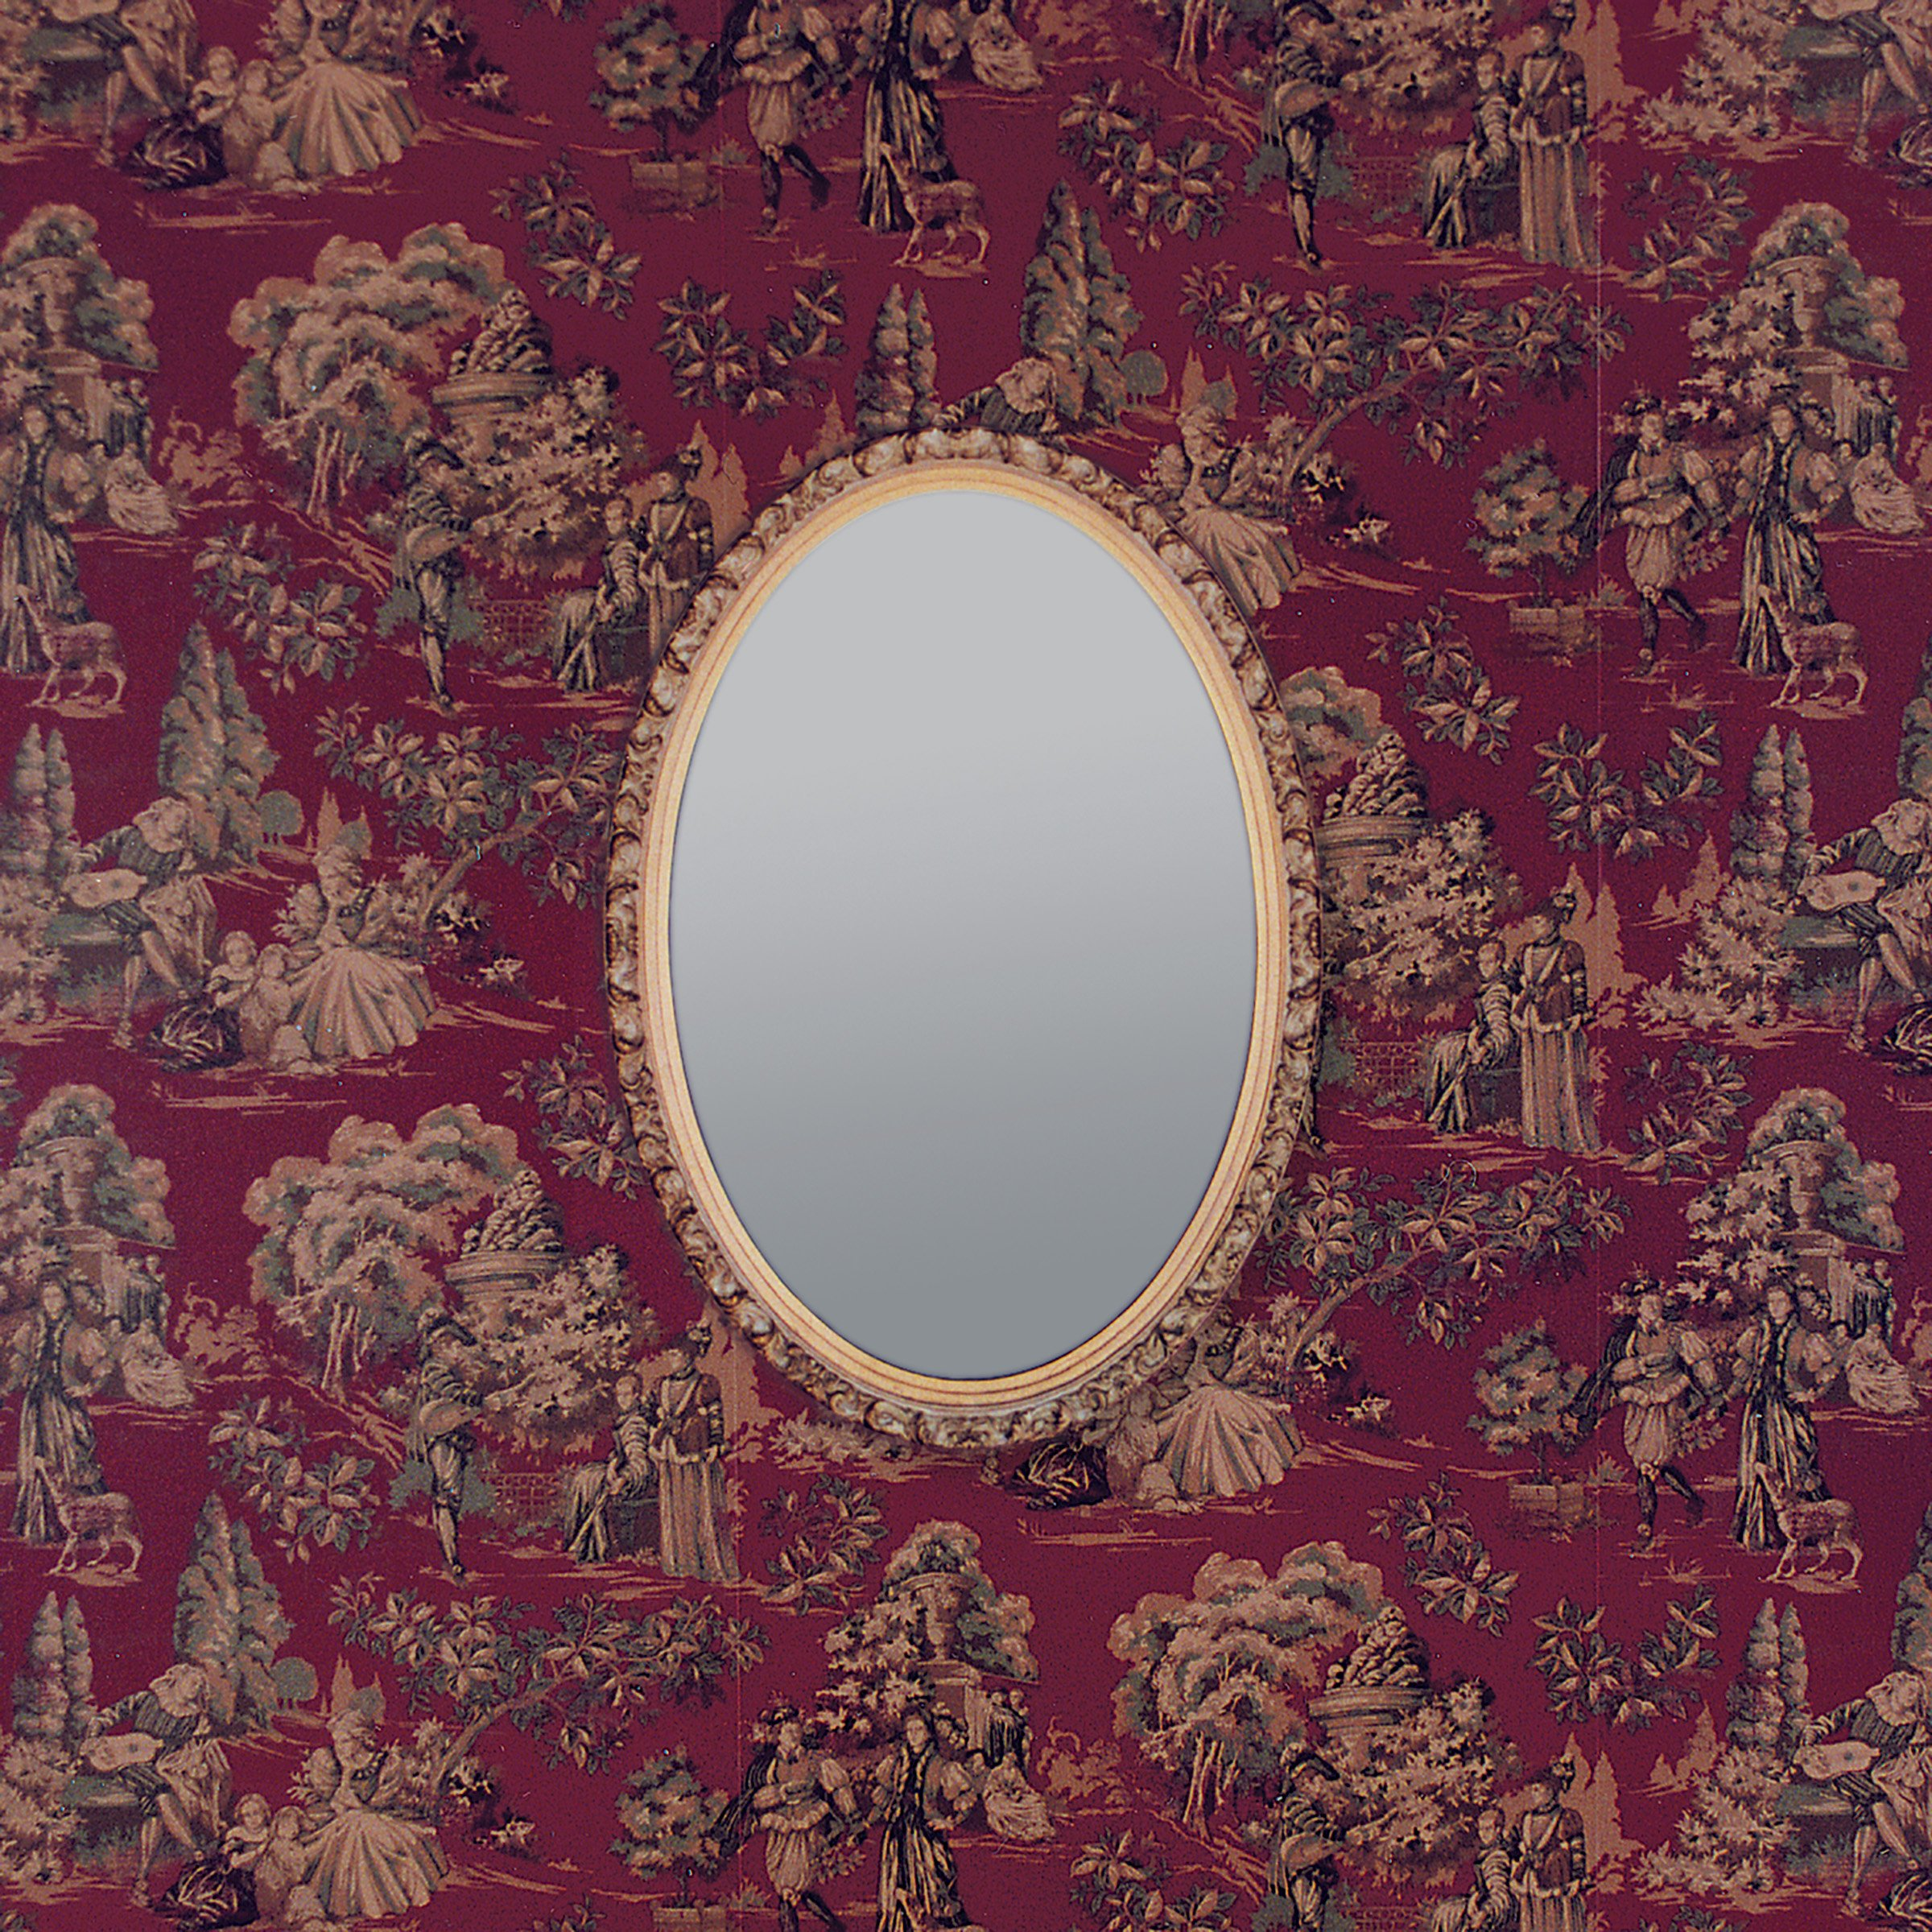 Fevers and Mirrors - Conor Oberst